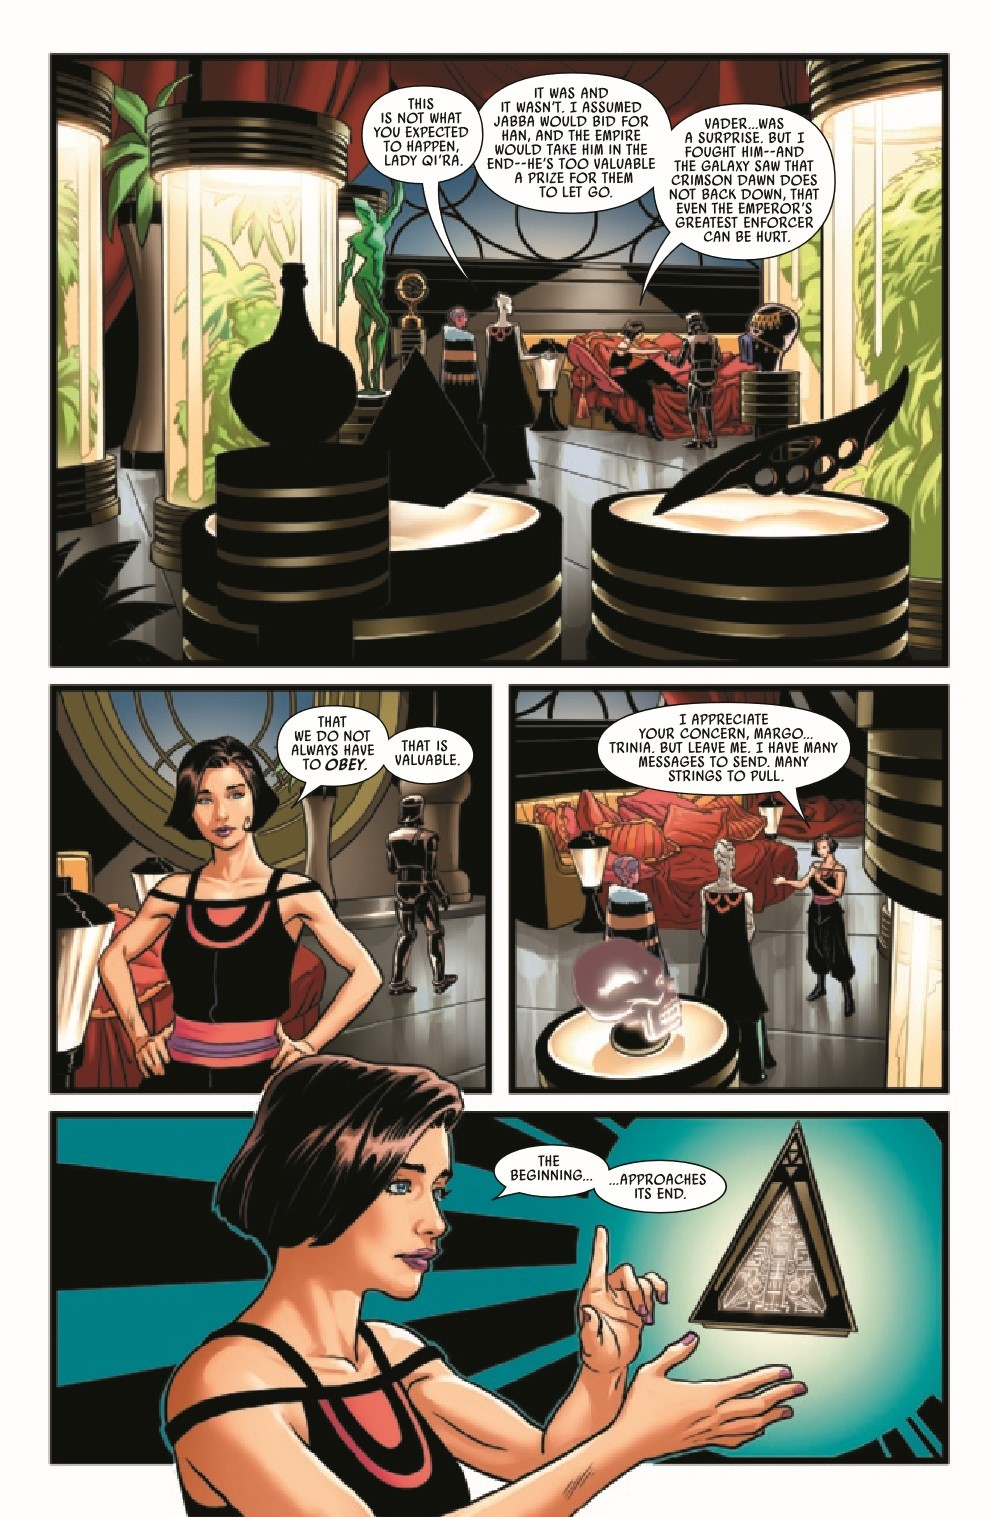 STWWAROTBH2021004_Preview-6 ComicList Previews: STAR WARS WAR OF THE BOUNTY HUNTERS #4 (OF 5)